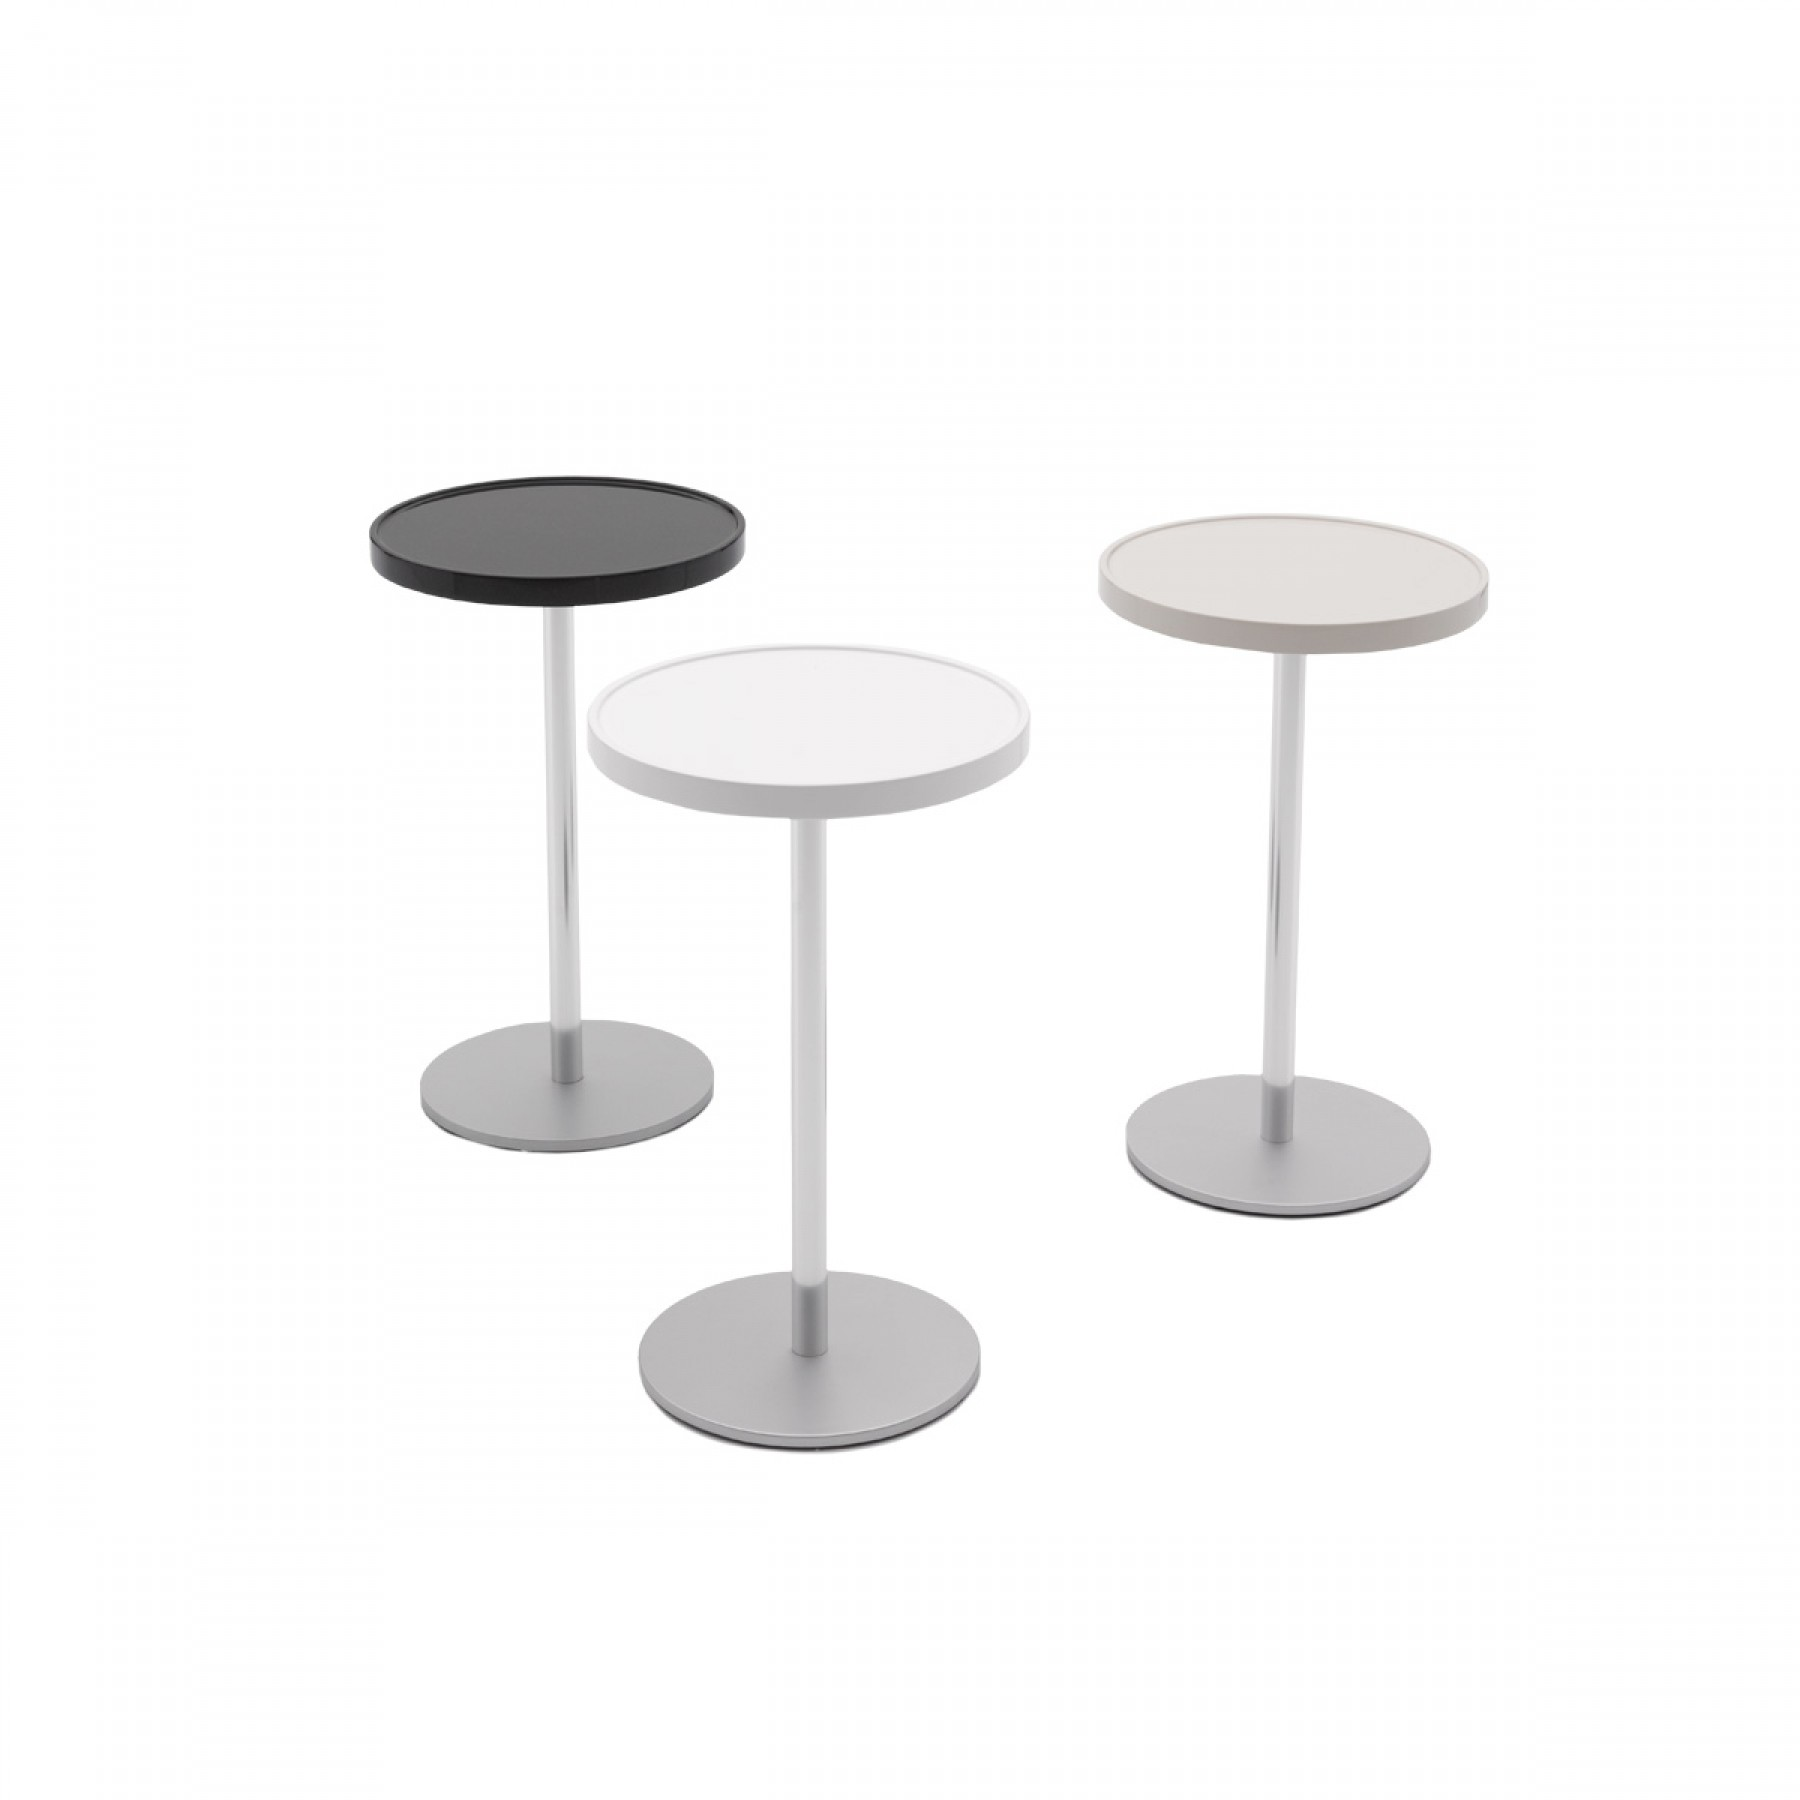 OLIVIA ROUND SIDE TABLE Beyond Furniture